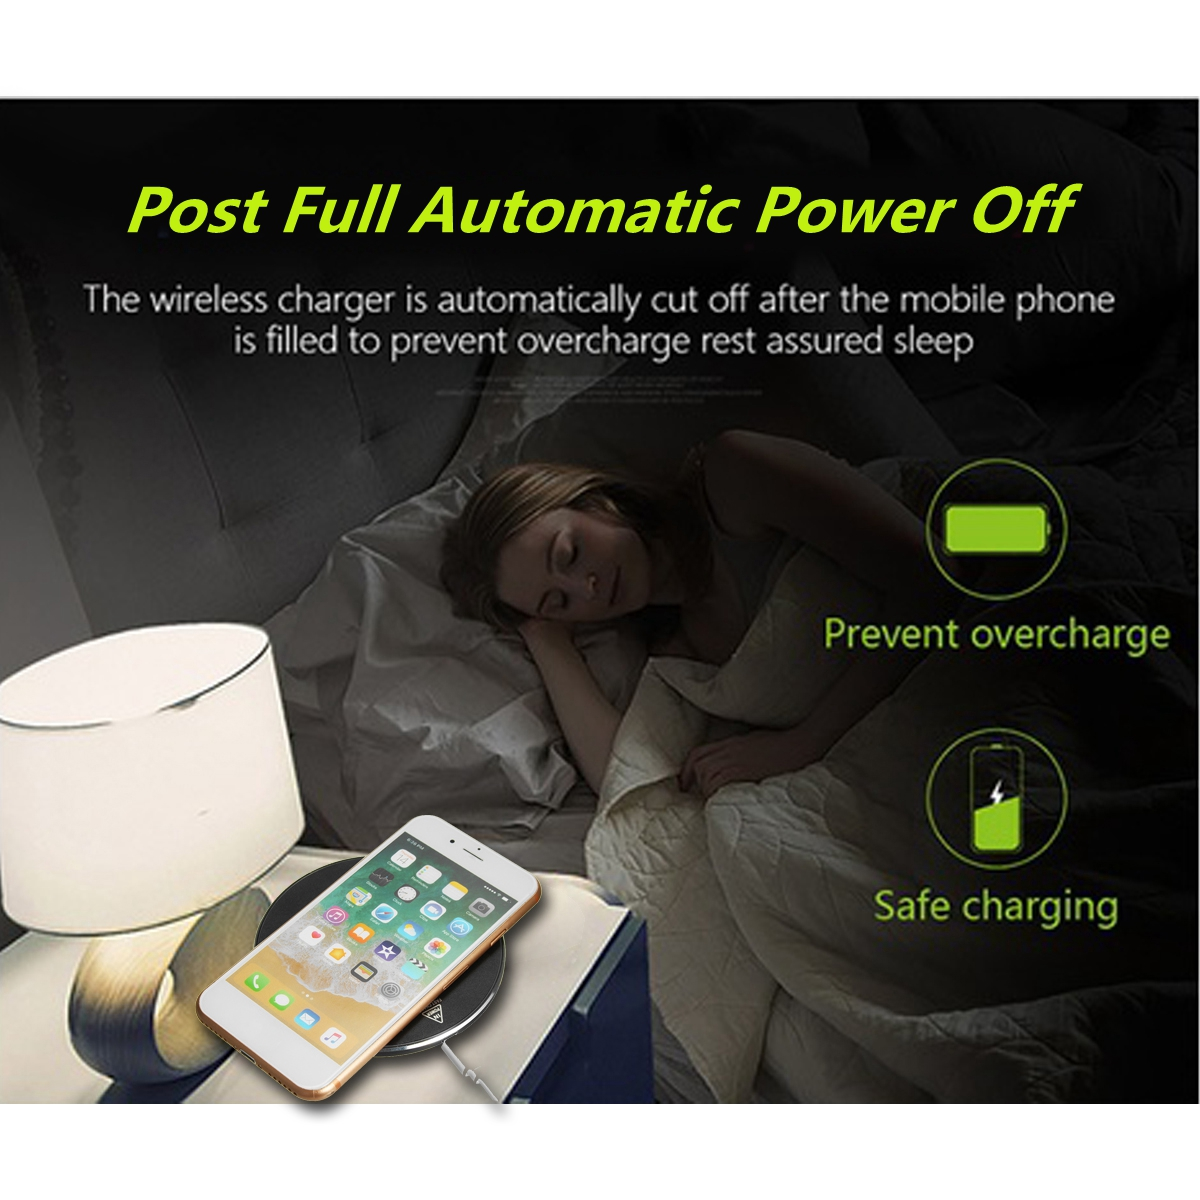 5W-10W Charging Frequency Round Wireless Fast Charger Universal Charging Power Pad for Mobile Phone